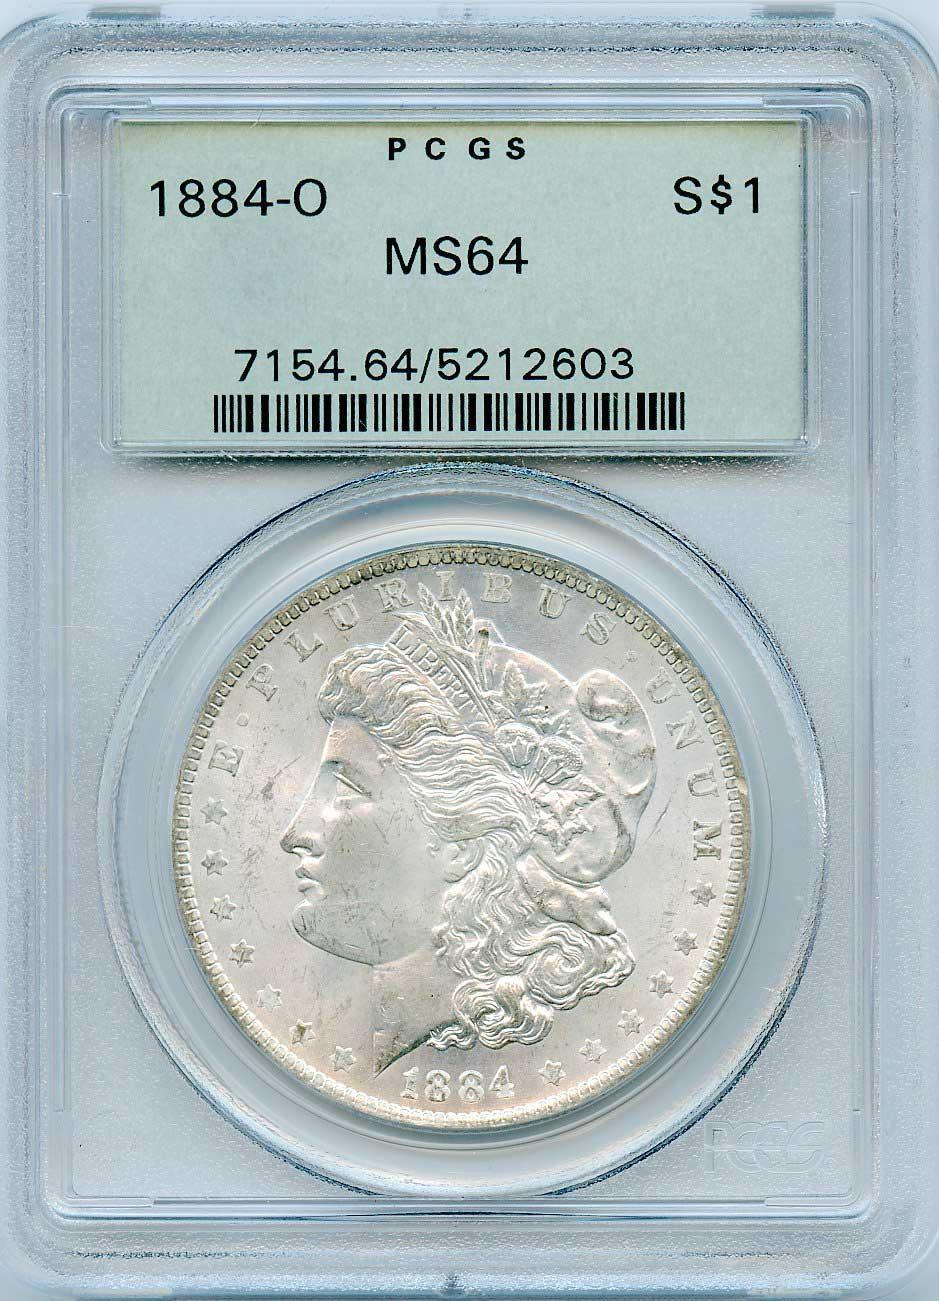 1884-O Morgan Silver Dollar - PCGS MS 64